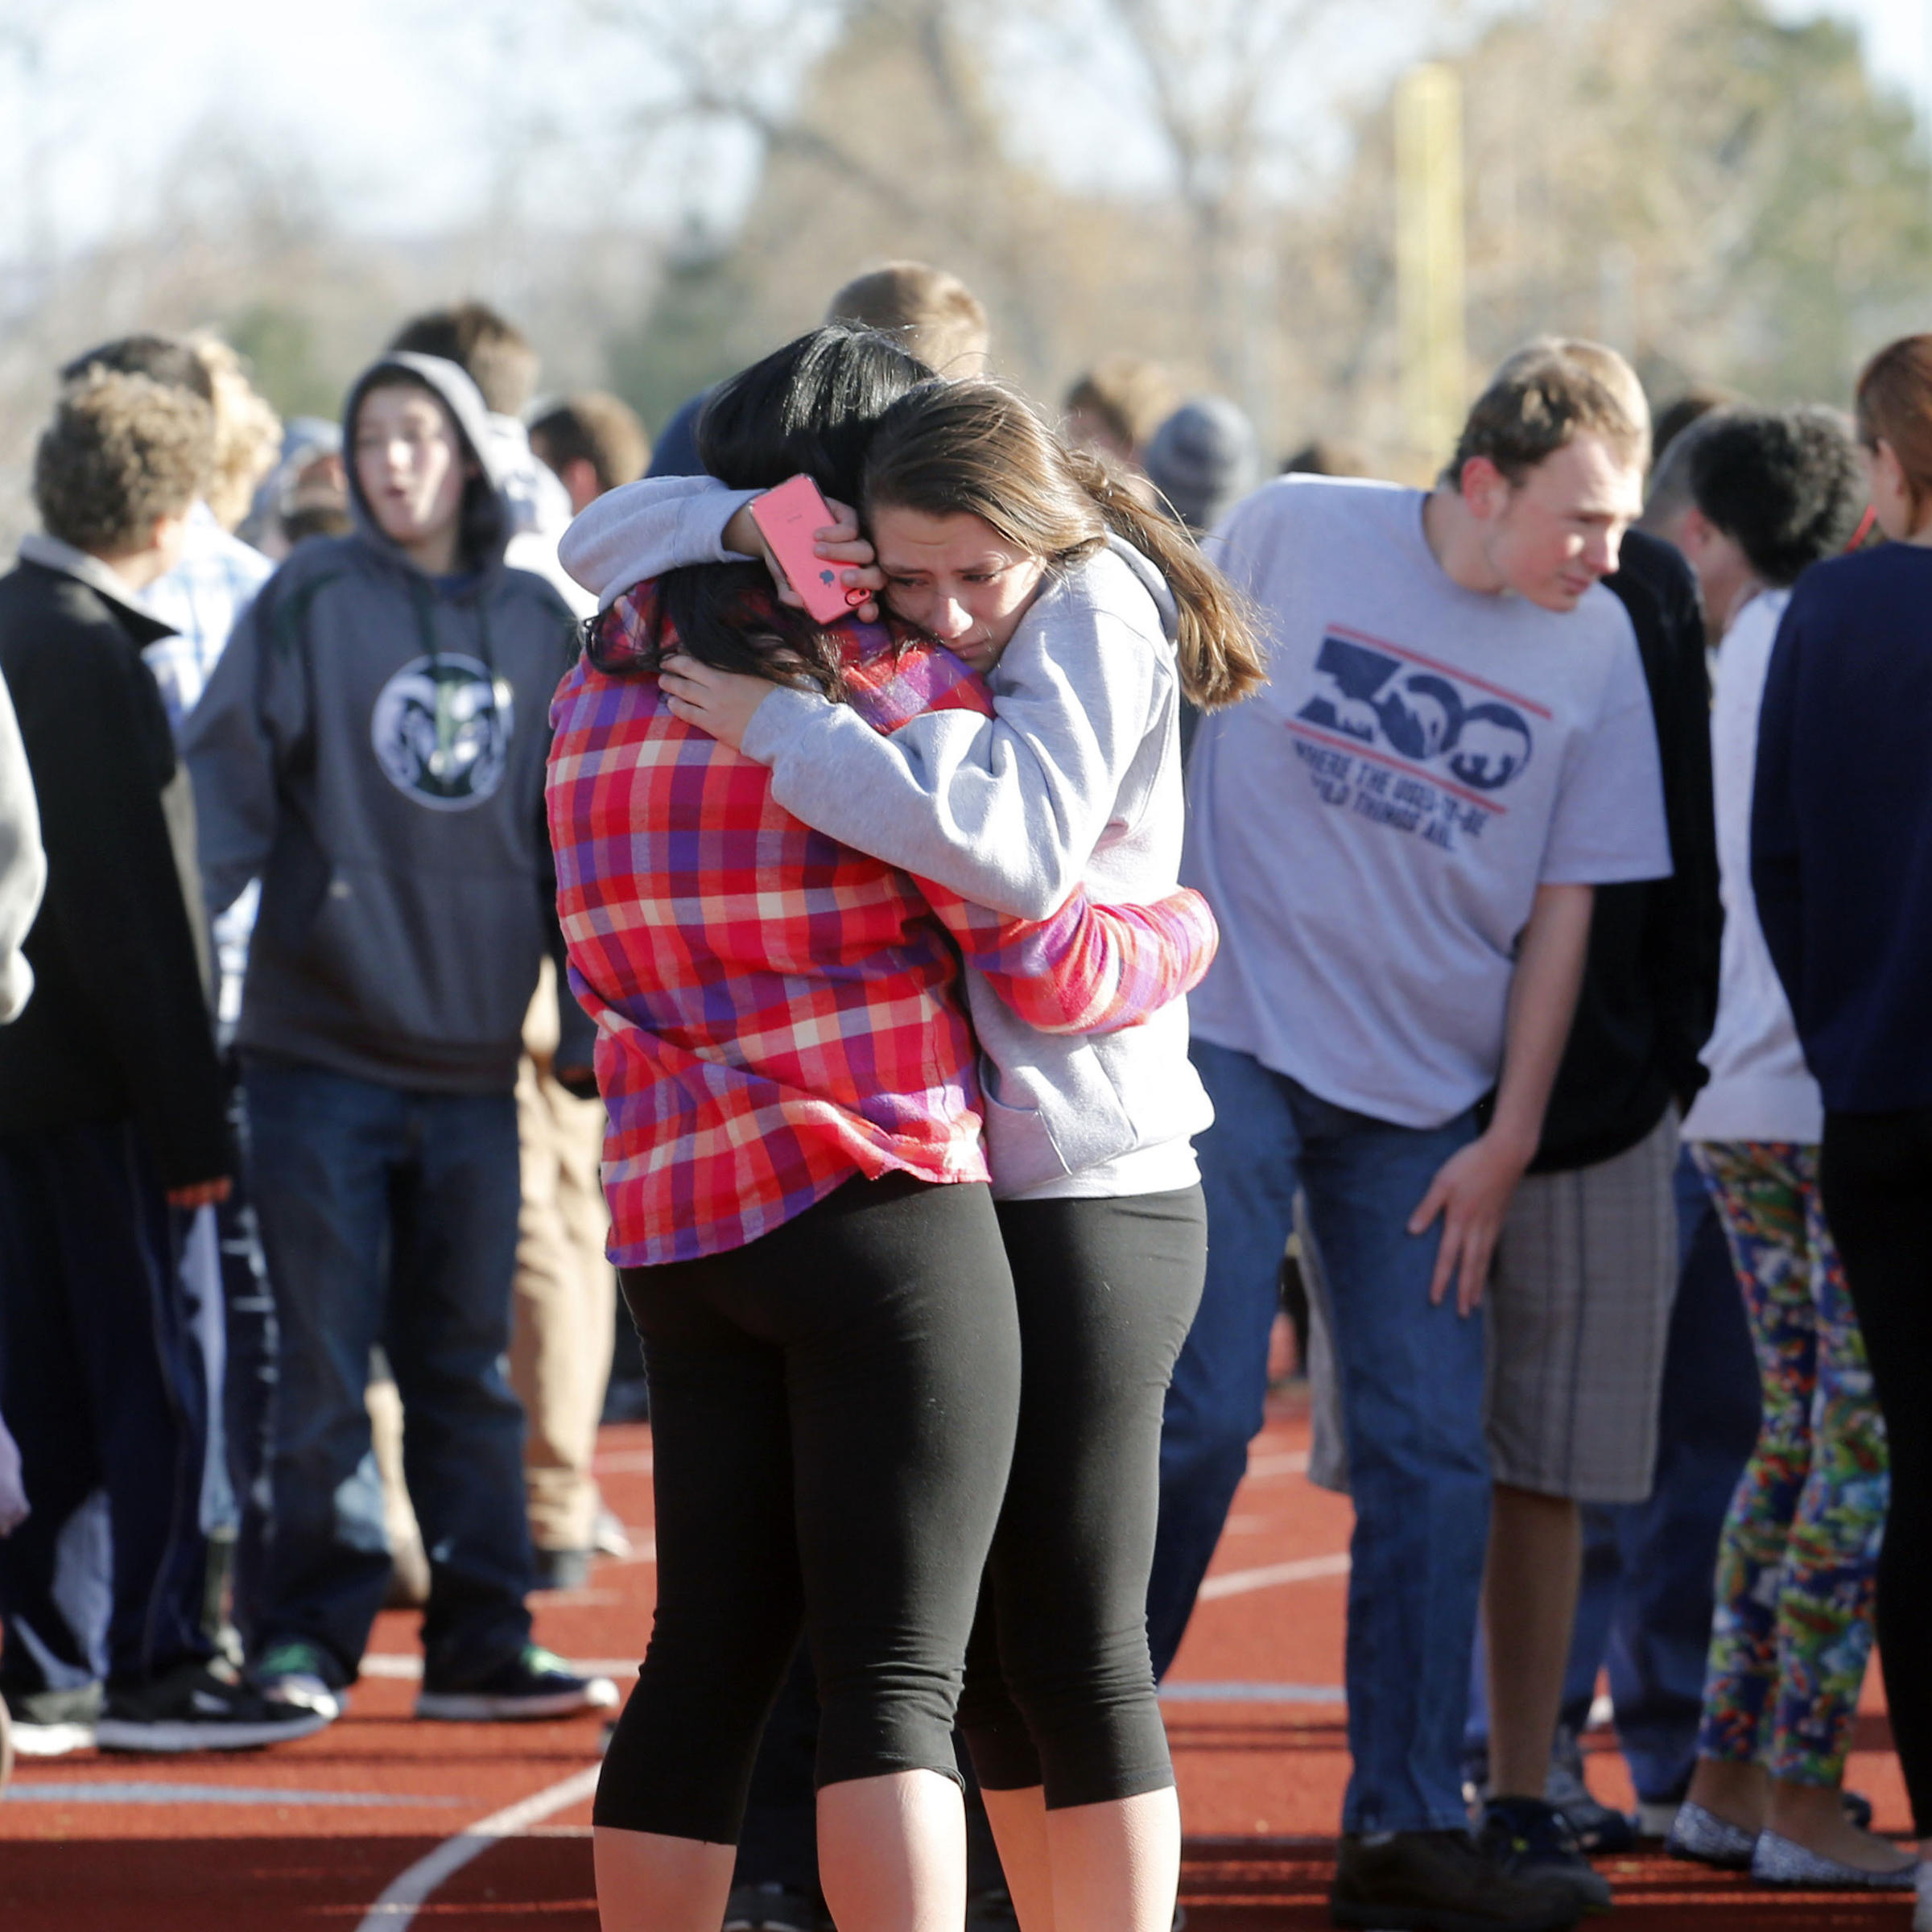 Arapahoe High School Shooting Denver Post: 2 Students Injured, Suspected Shooter Dead At Colo. High